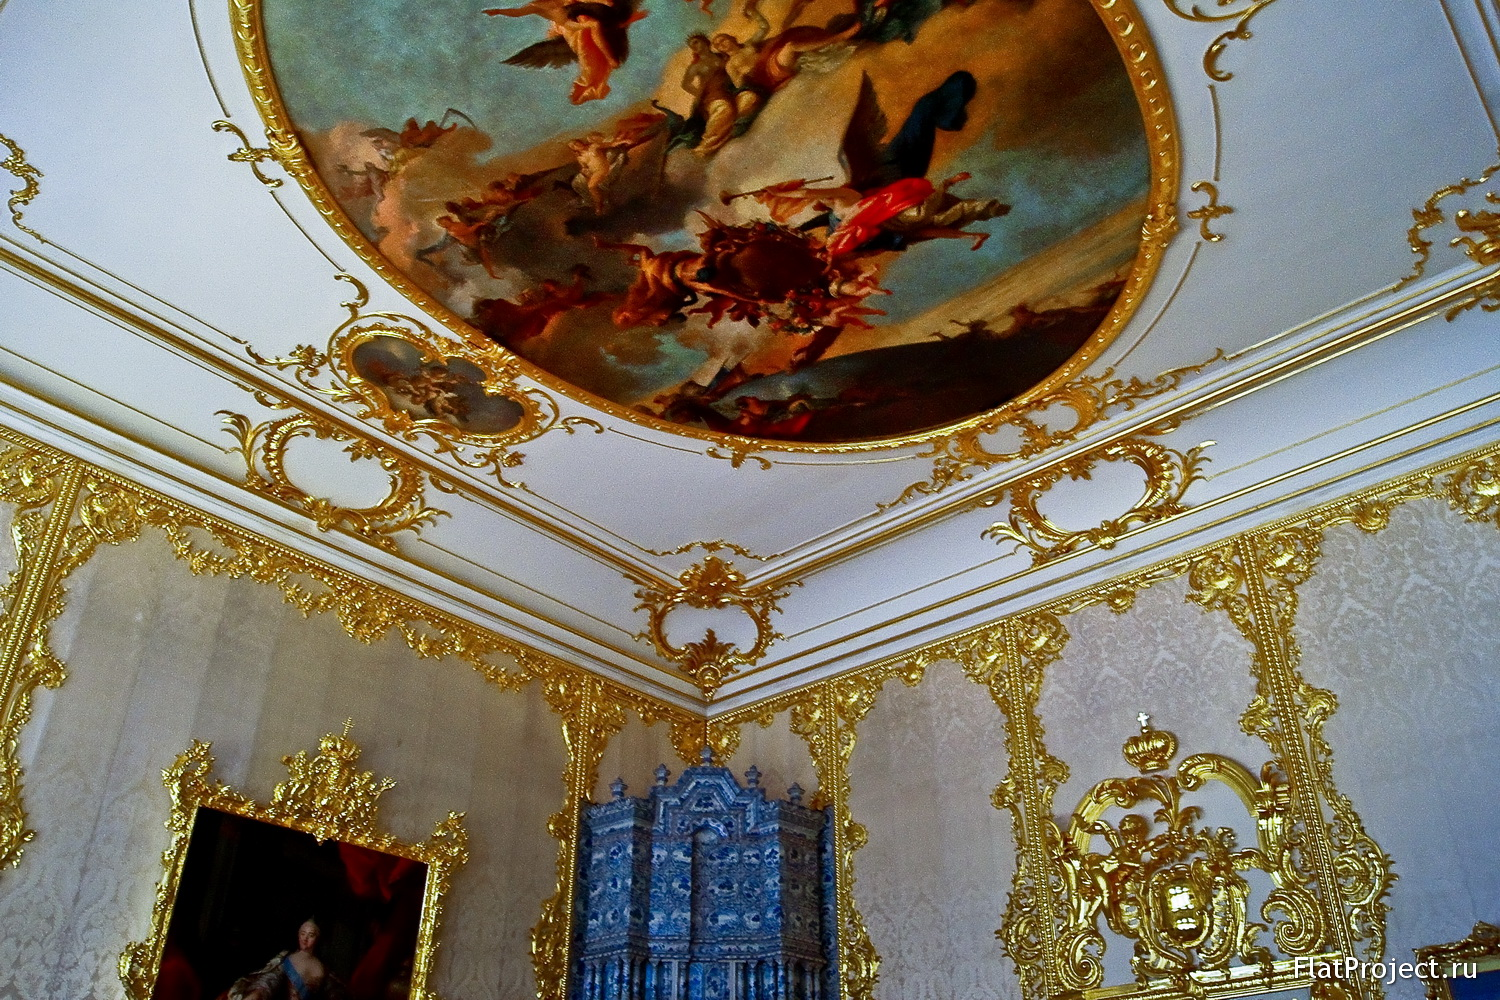 The Catherine Palace interiors – photo 153